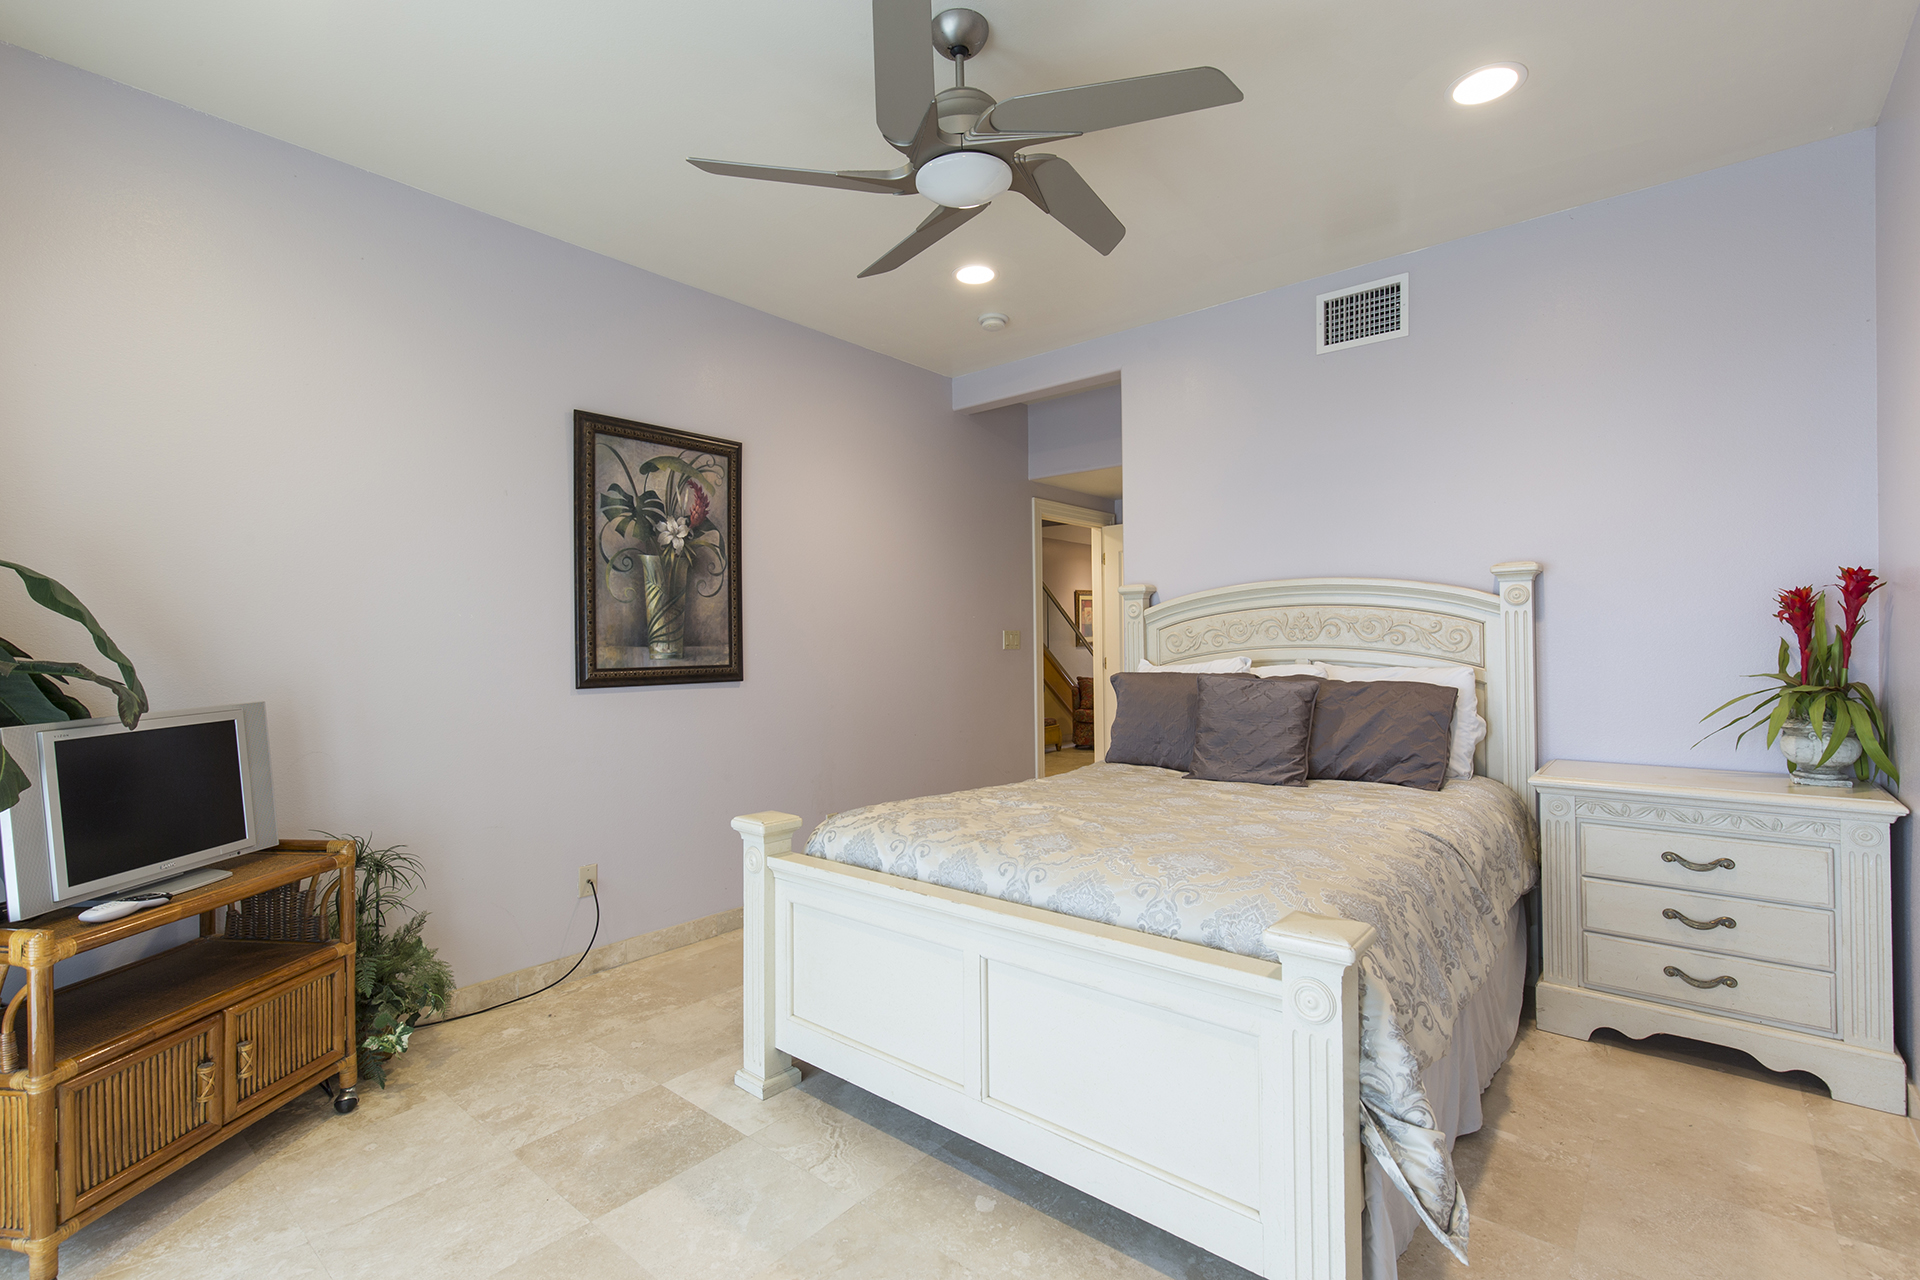 2nd guest room on the ground floor with TV